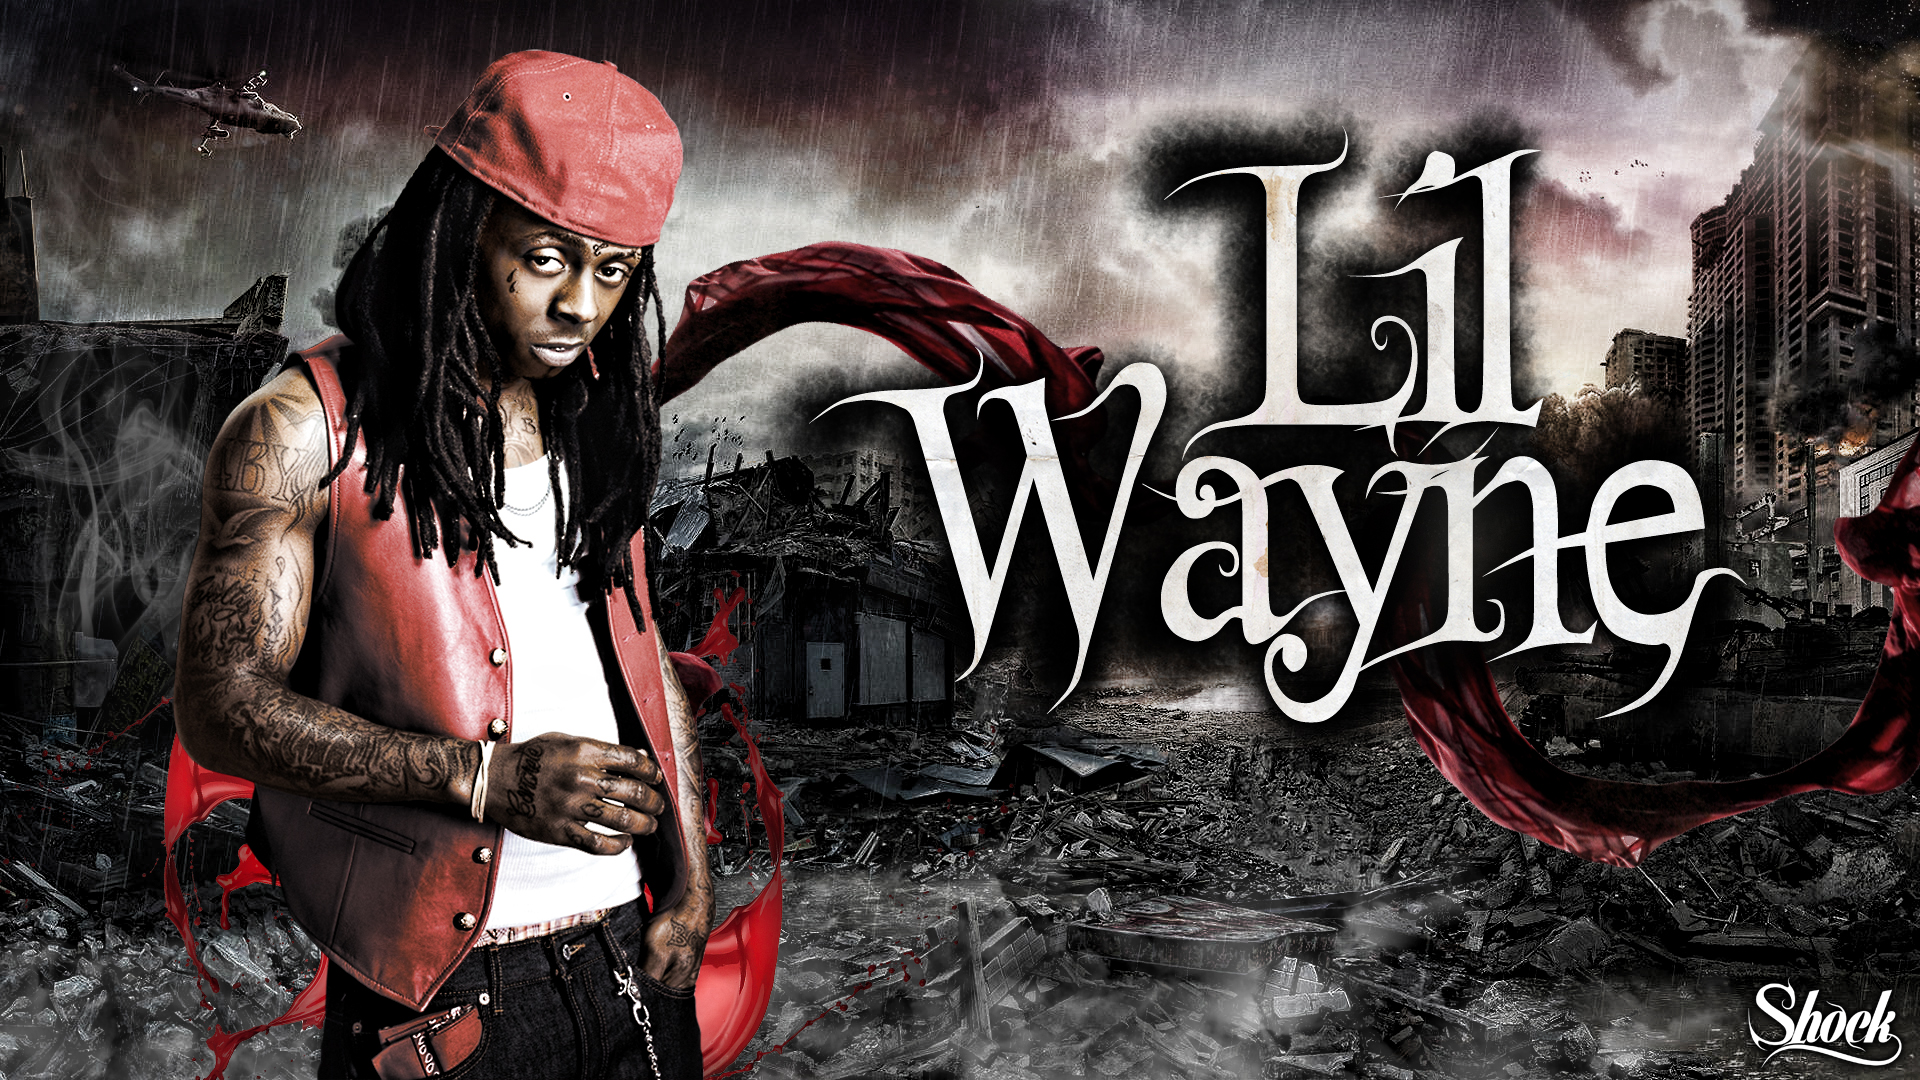 Rap Wallpapers Lil Wayne Lil Wayne hd 4 Rap 1920x1080